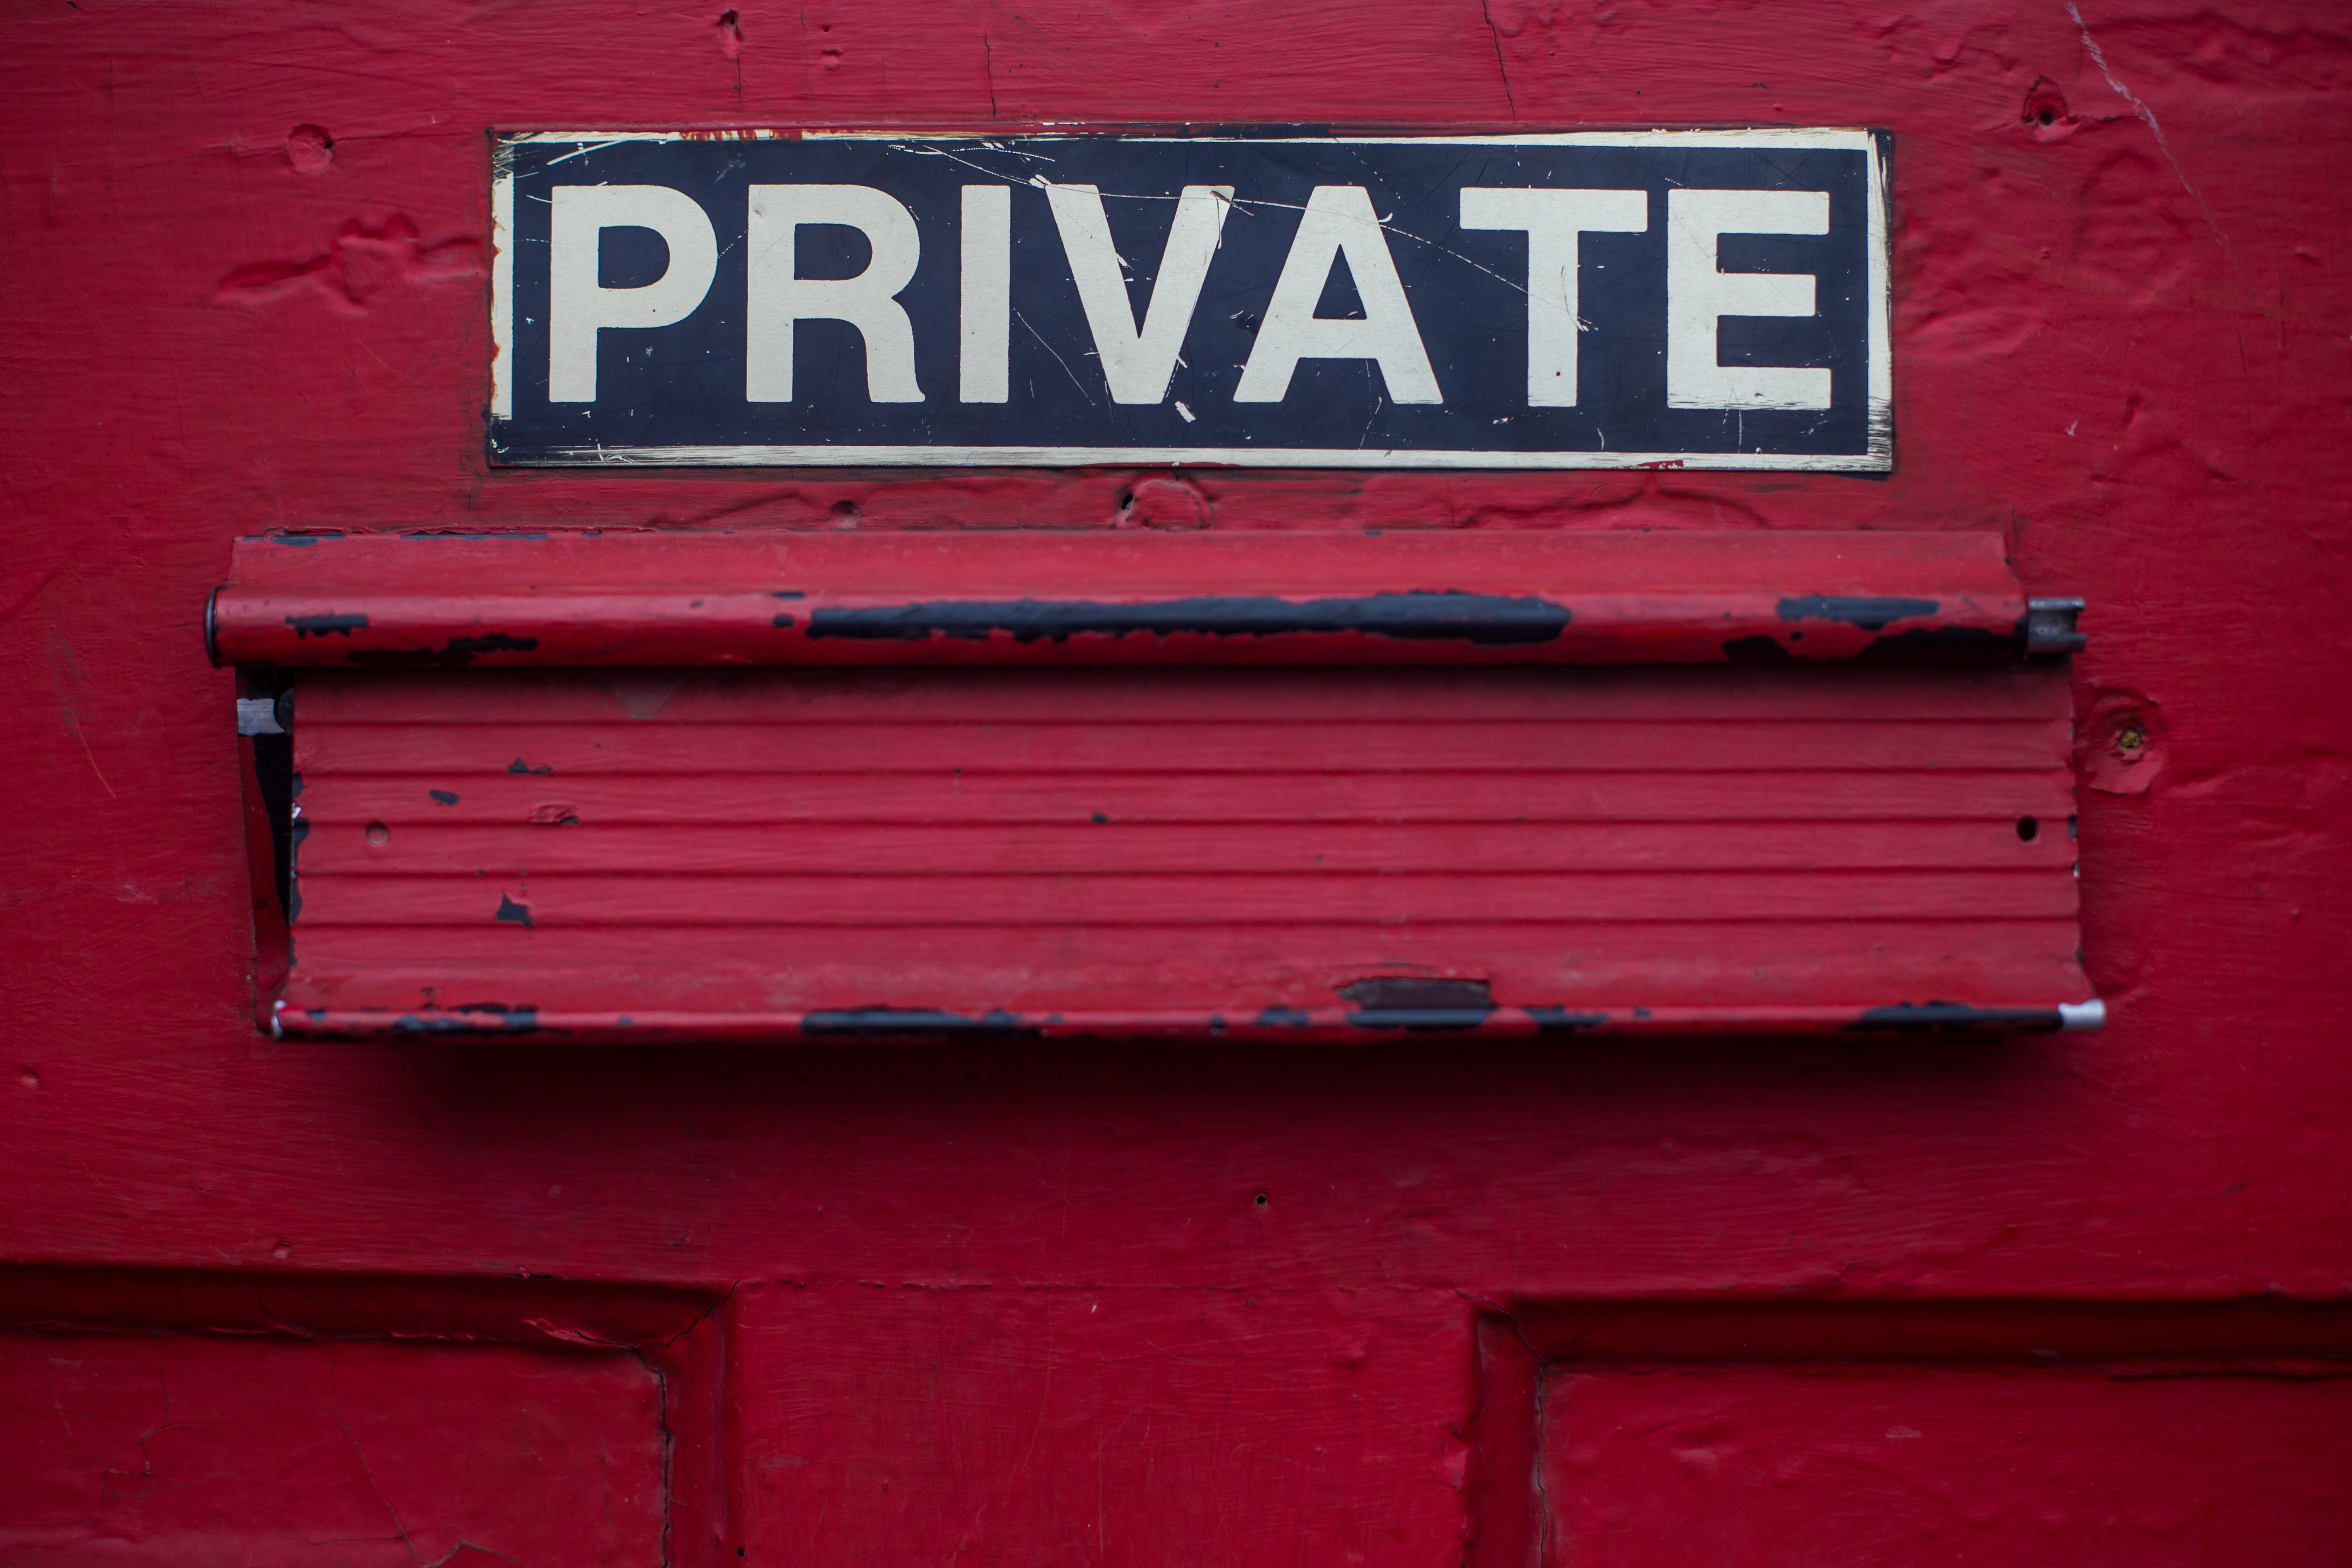 PRIVATE on red door